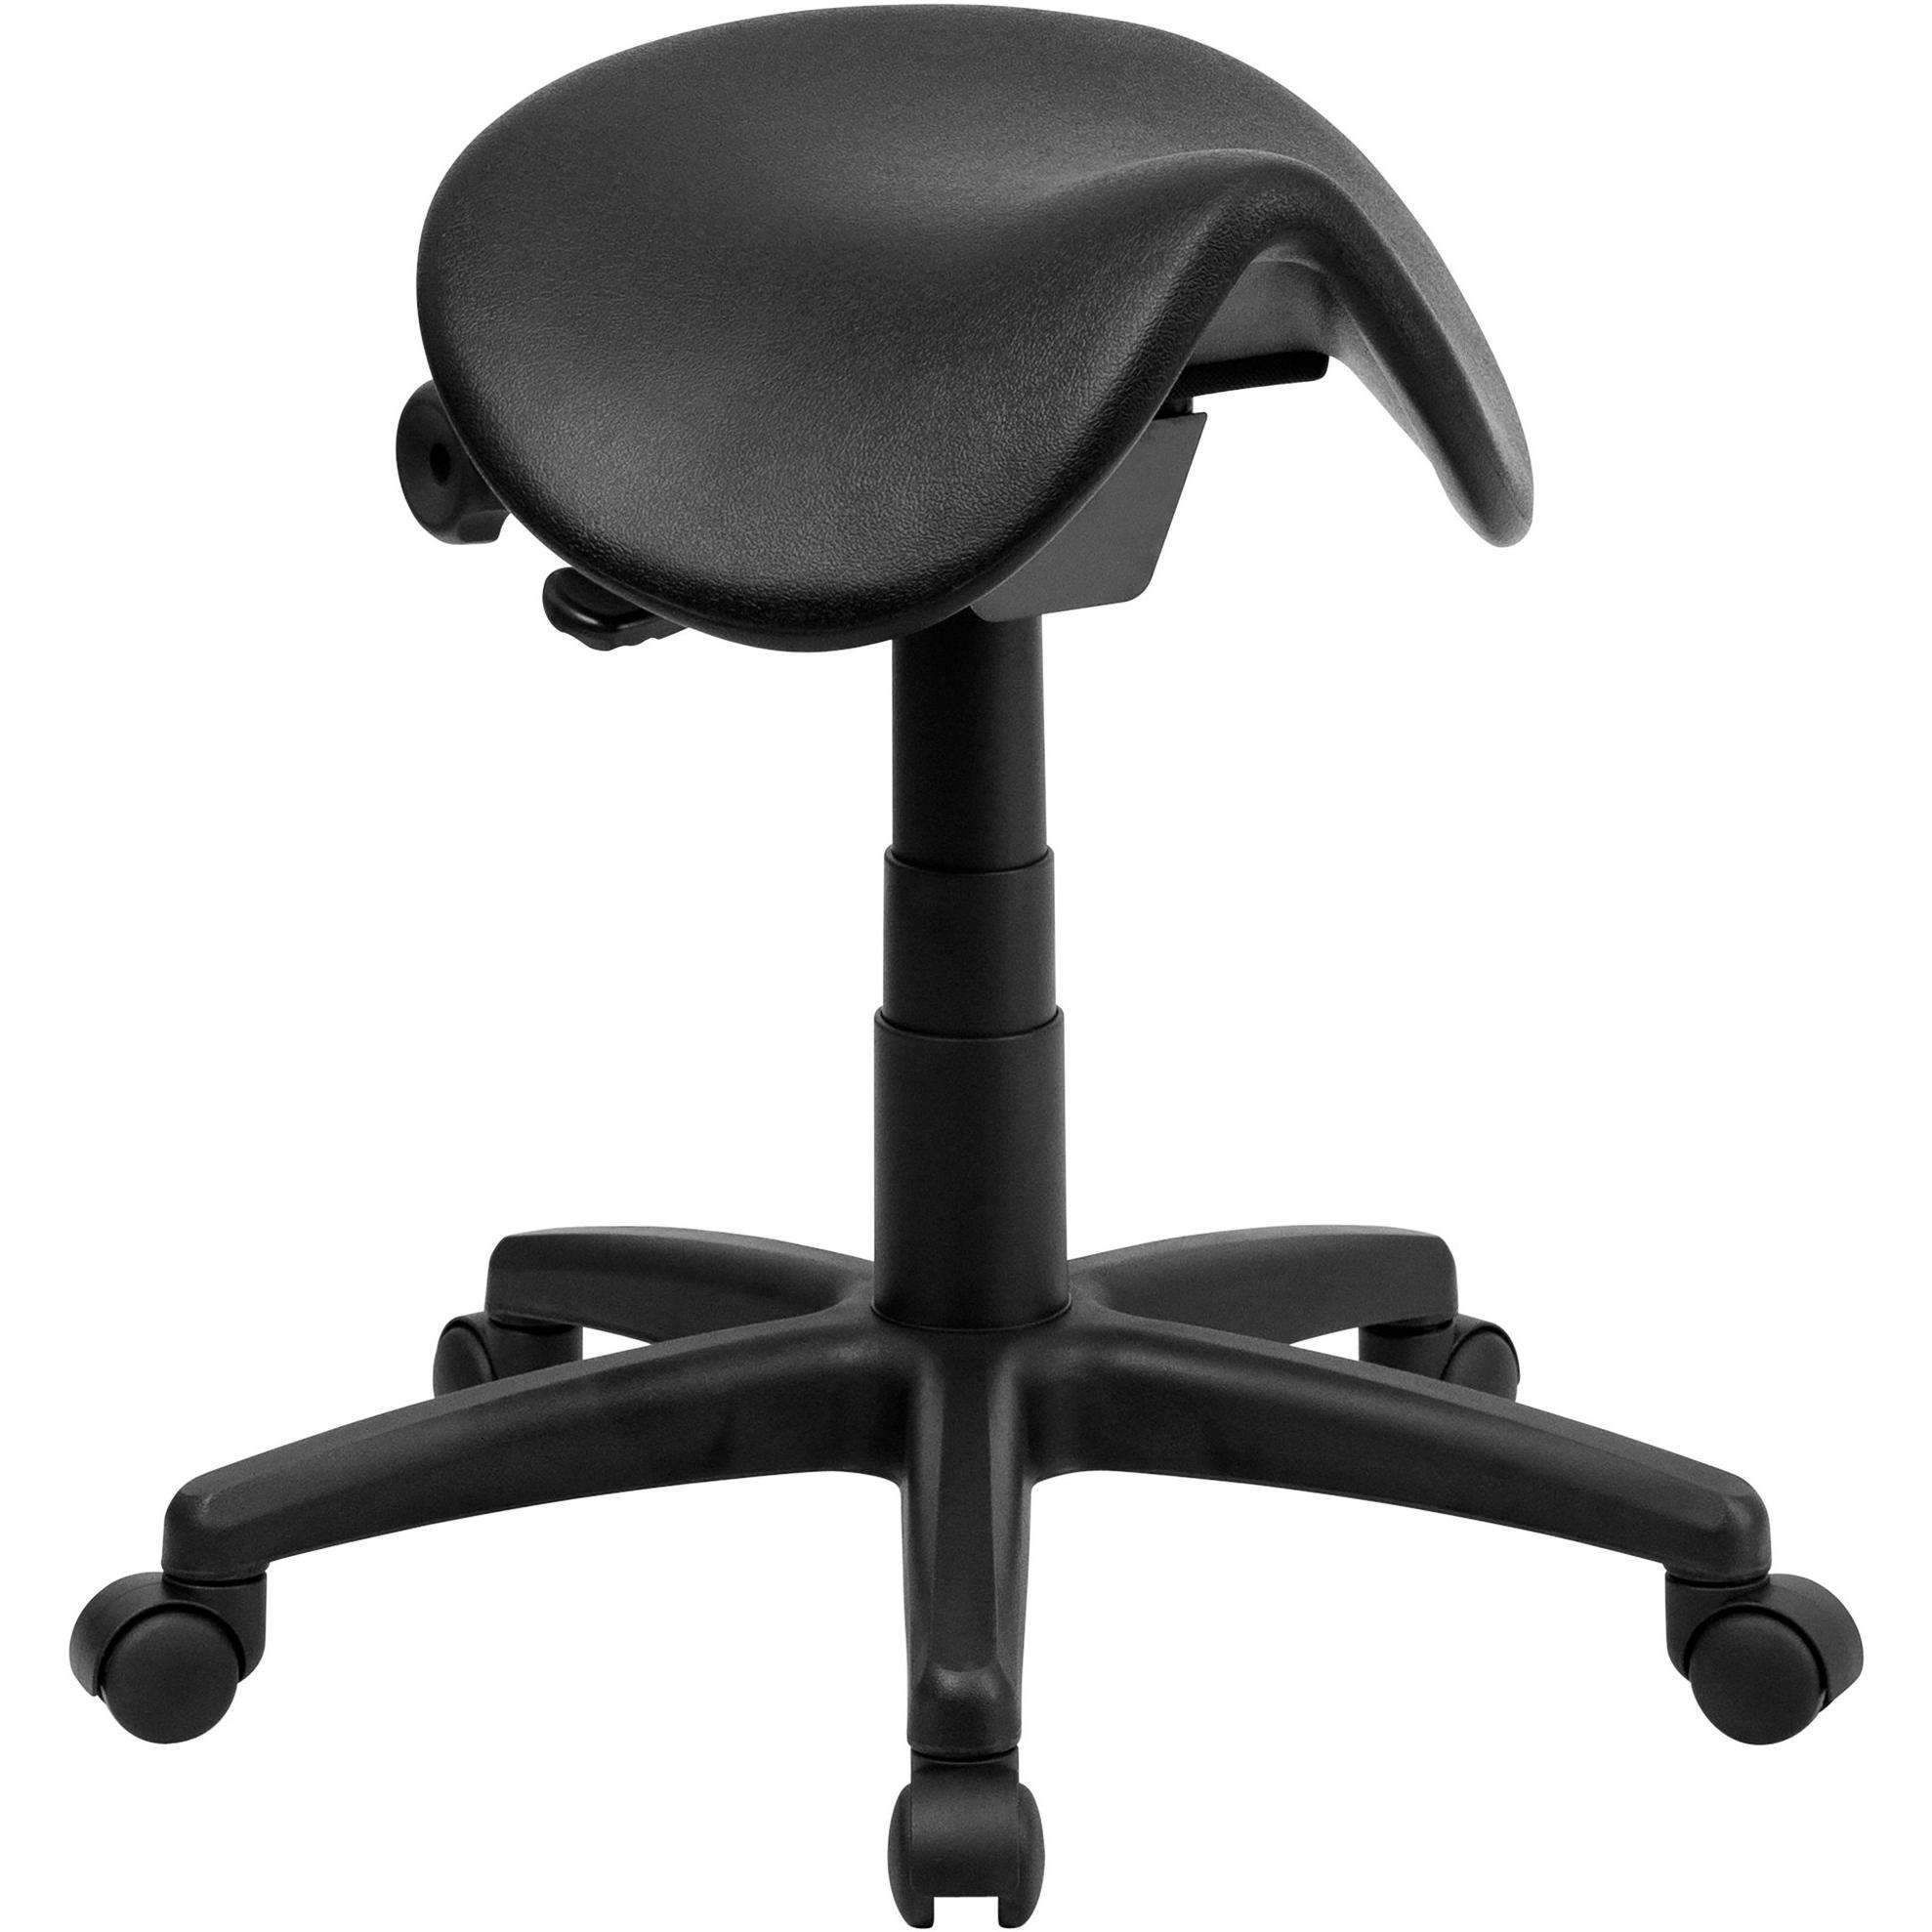 Sit Healthier Backless Ergonomic Saddle Stool For Office And Medical